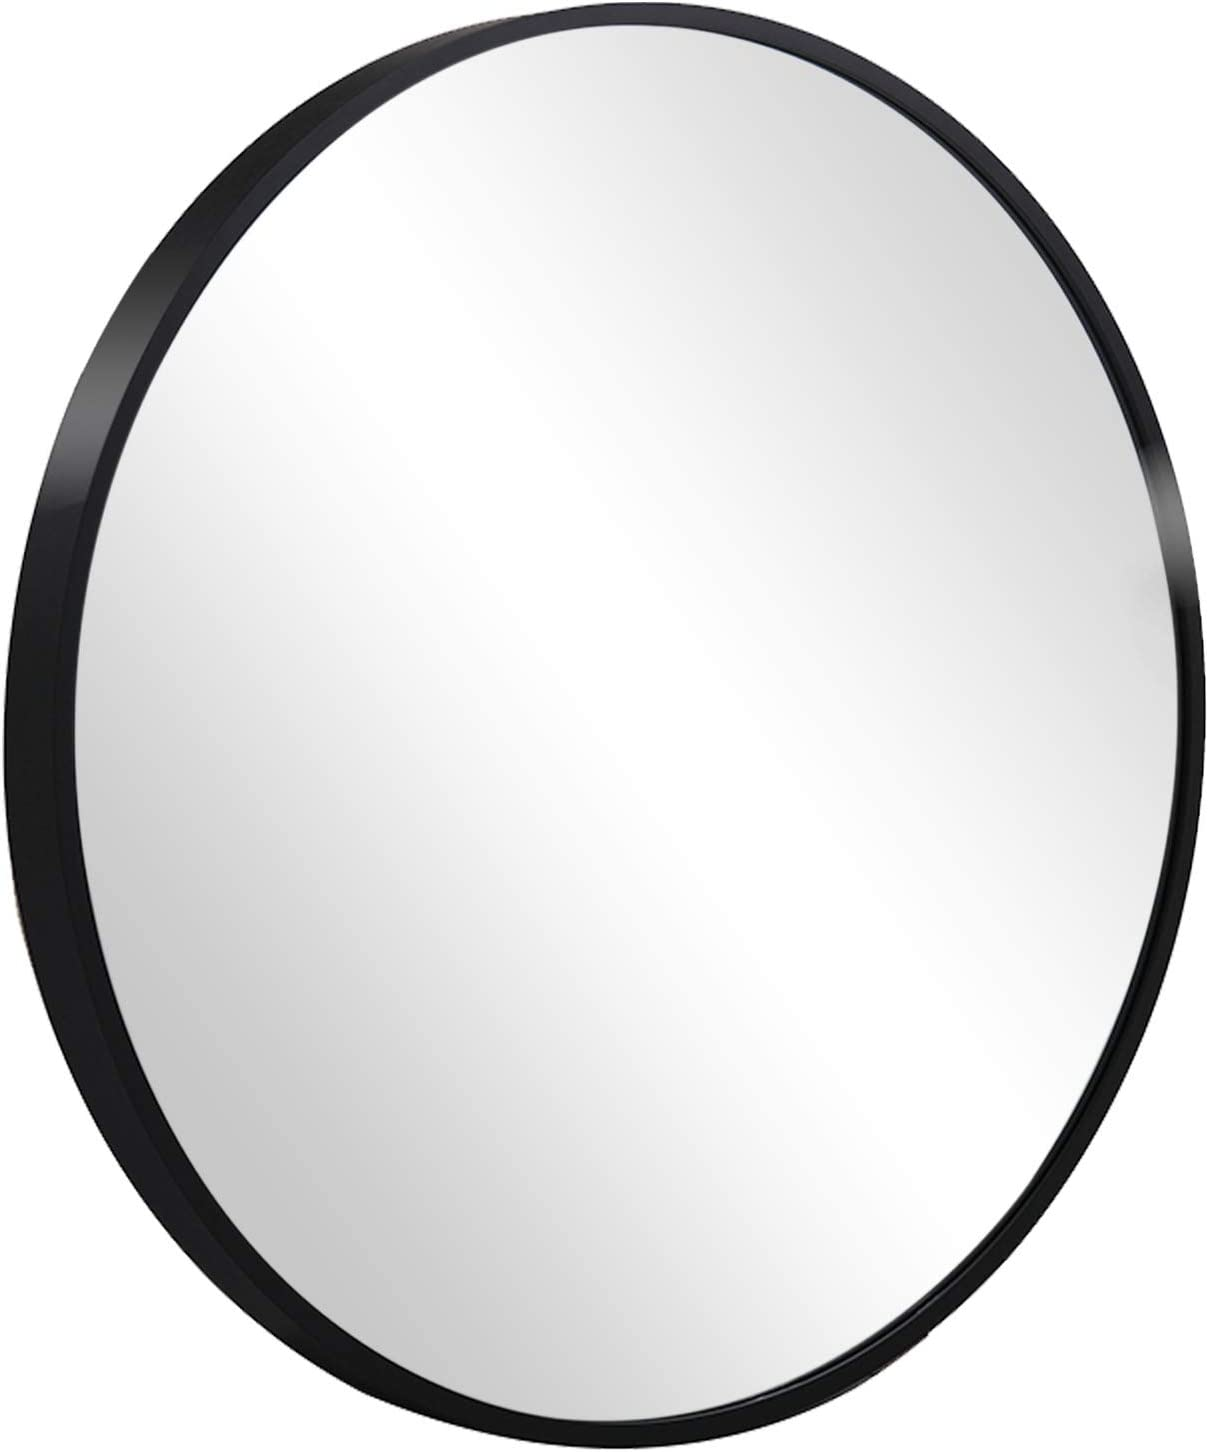 OTTATO Round Mirror Wall Decor Round Black Mirror with Metal Frame, 24 Inch Circle Mirror Wall Mirror for Bathroom, Living Room, Dining Room&Entry